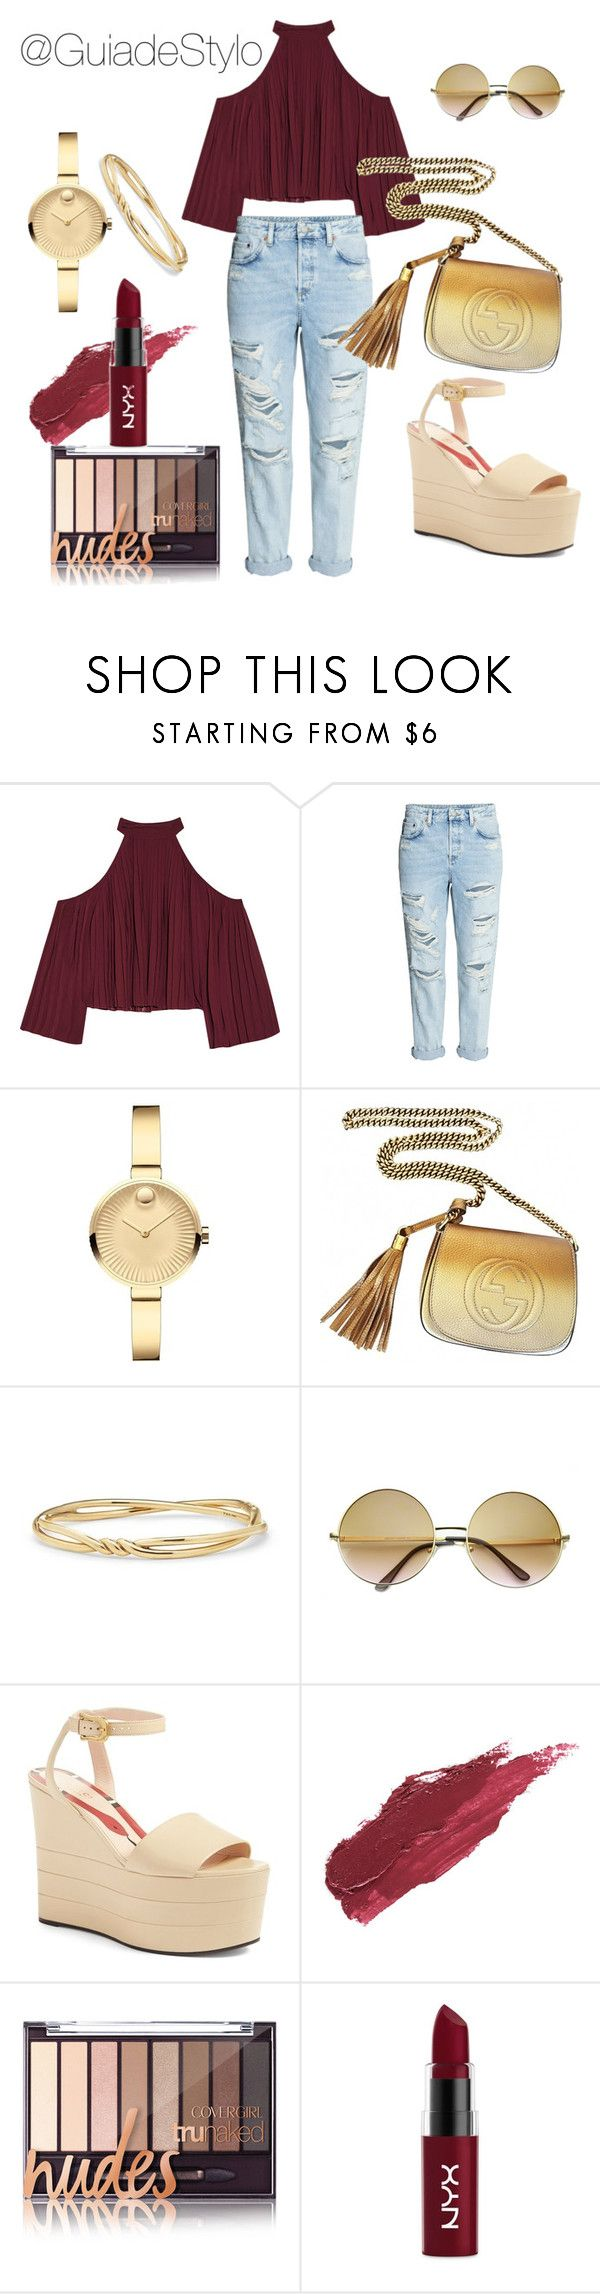 """""""Casual"""" by guiadestylo ❤ liked on Polyvore featuring W118 by Walter Baker, Movado, Gucci, David Yurman, ZeroUV, Lily Lolo and NYX"""